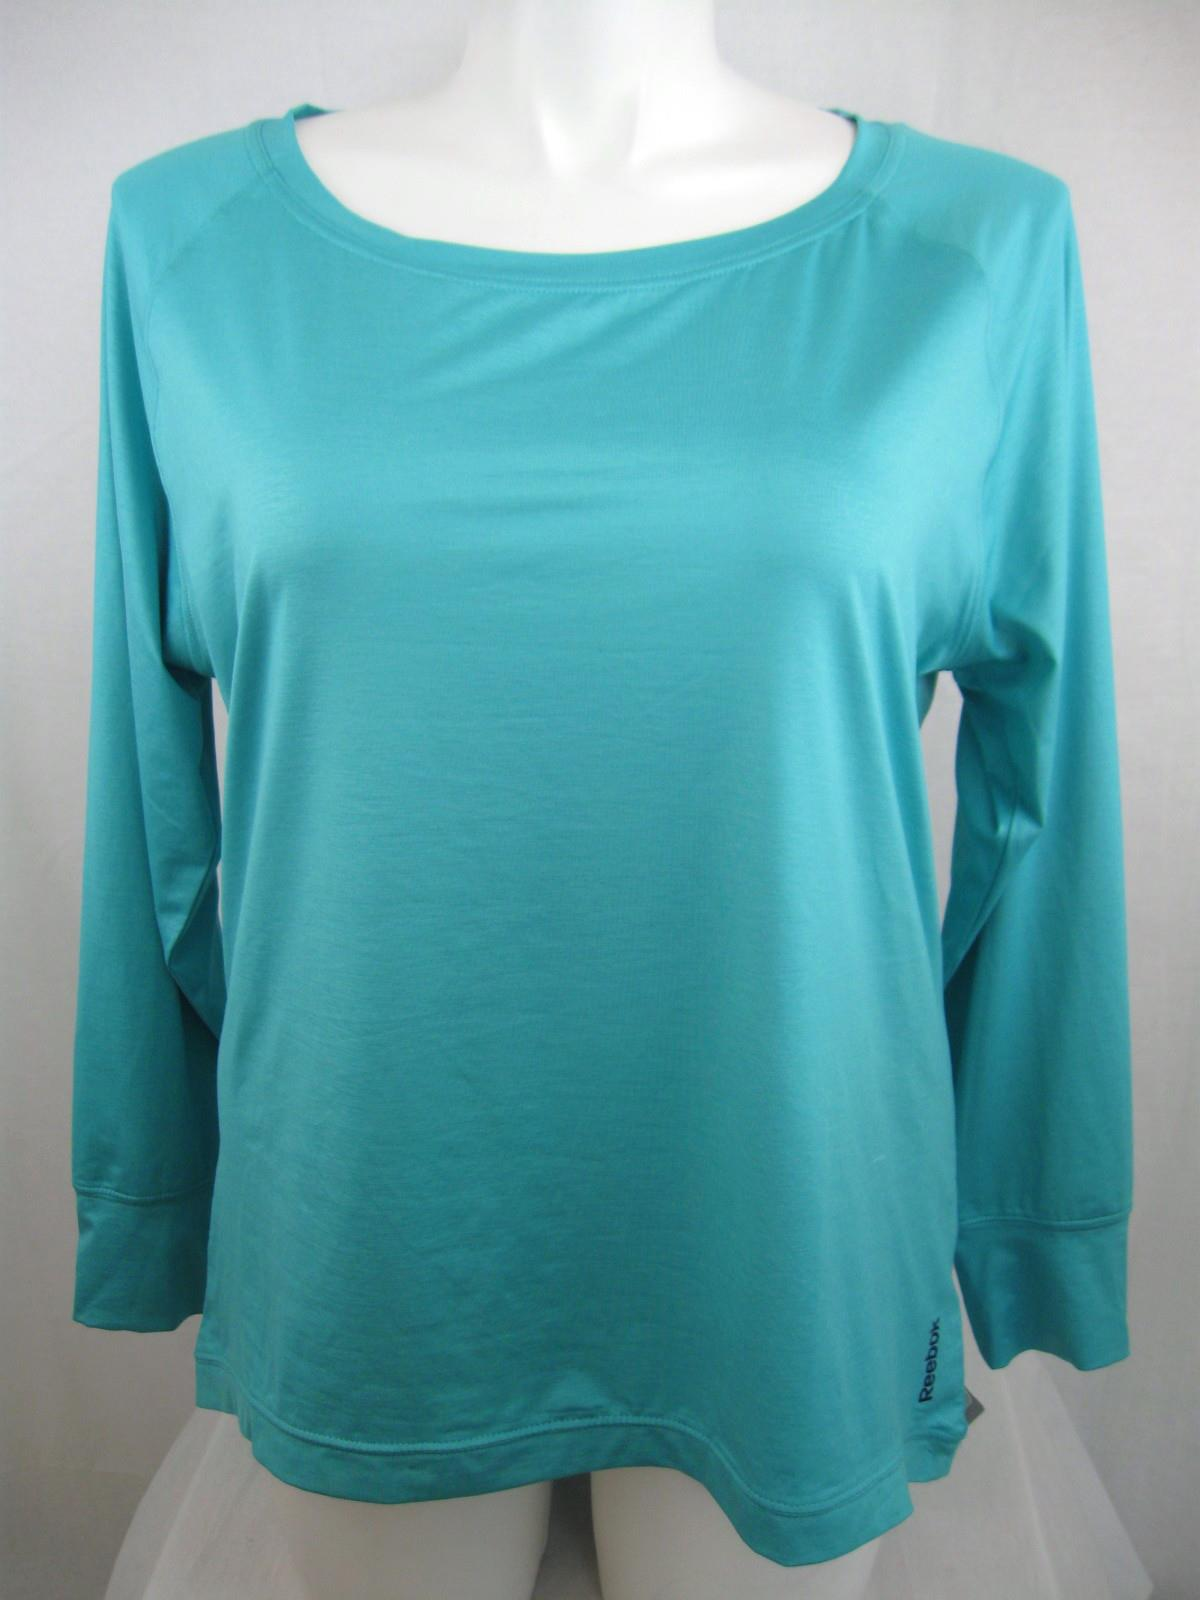 Reebok Plus Size Play Dry Long Sleeve Find Your Own Fitness Top | eBay